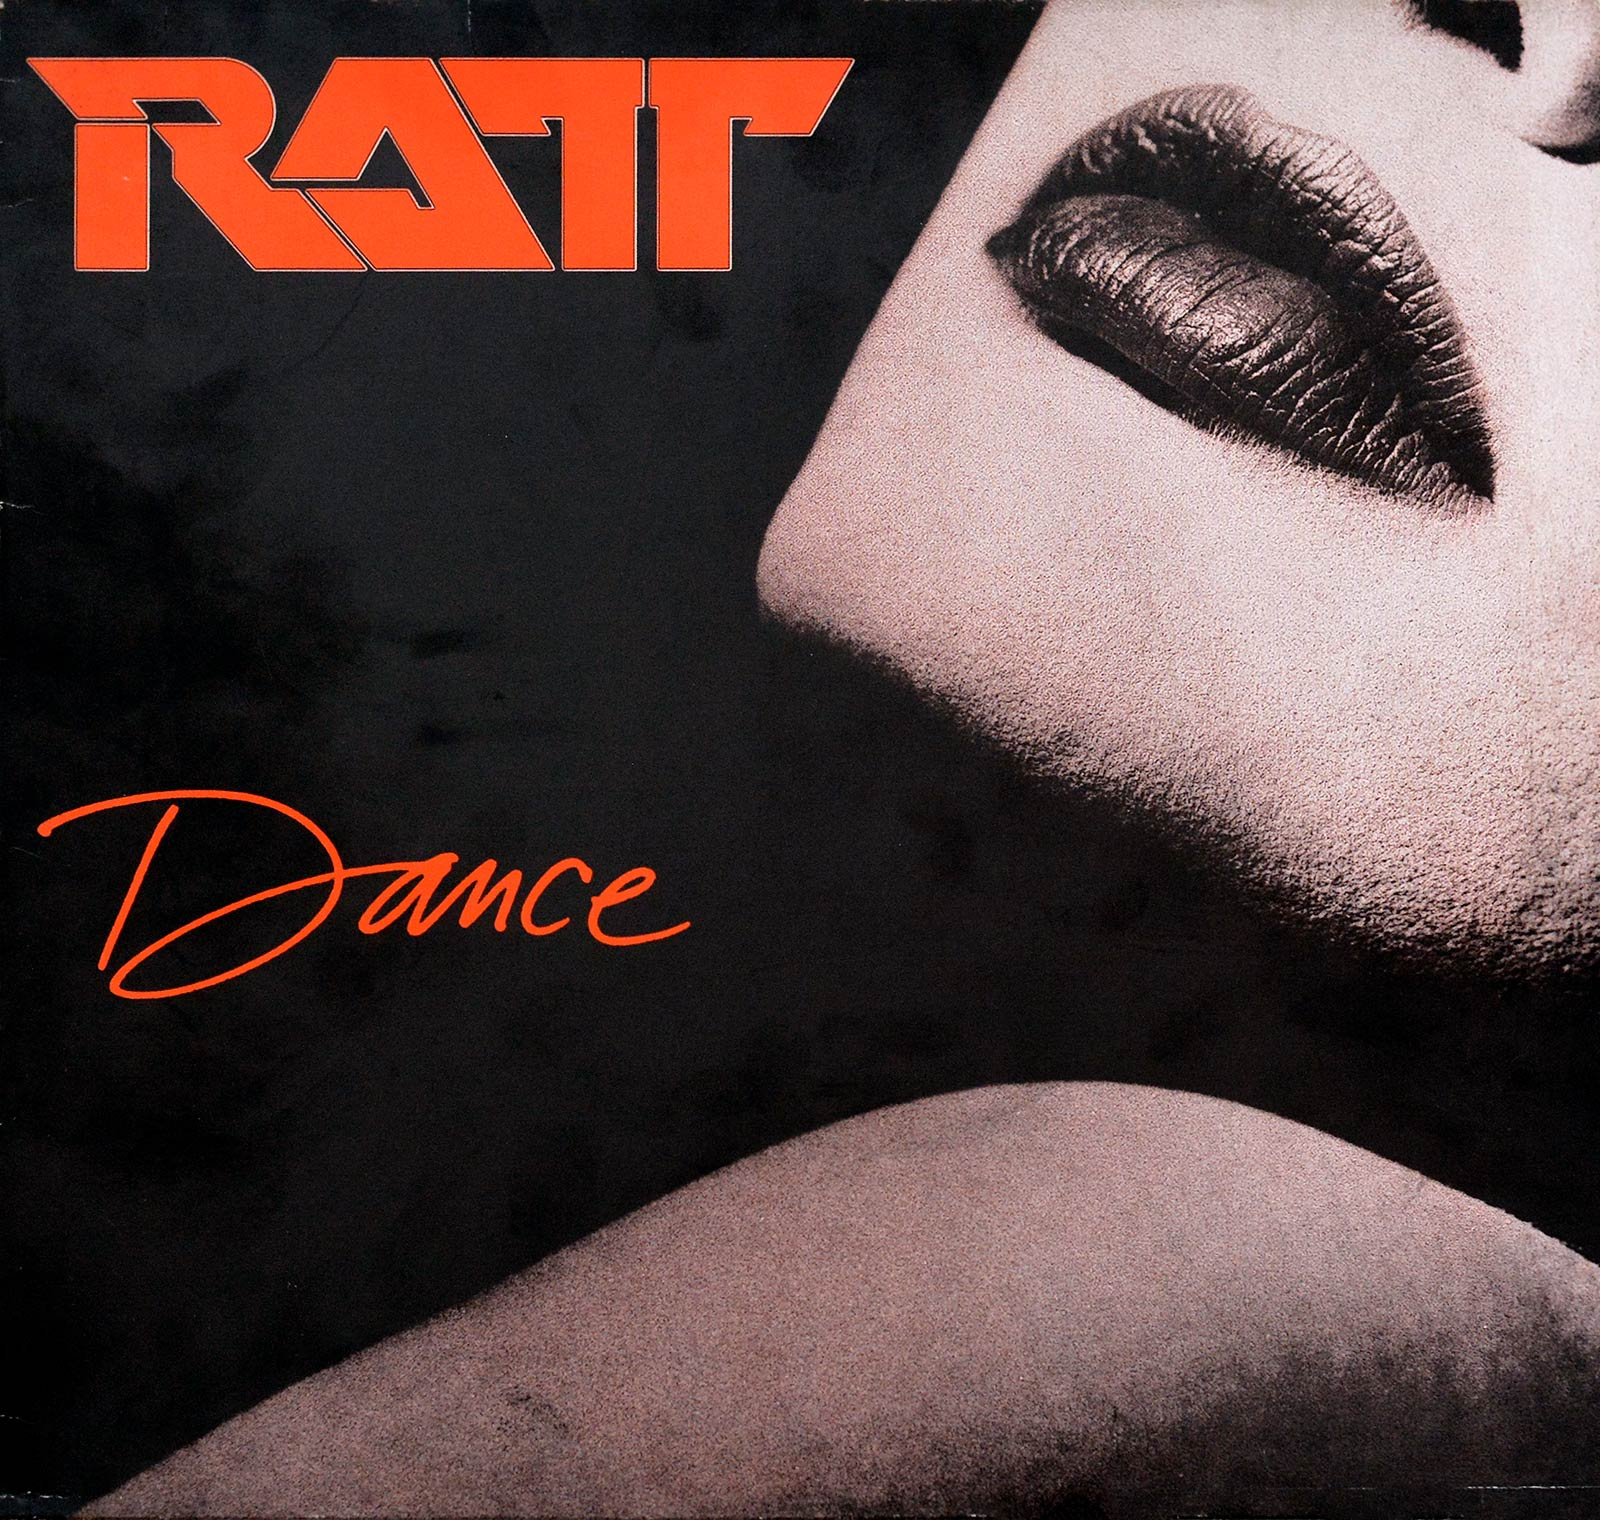 ratt dance front cover photo edited